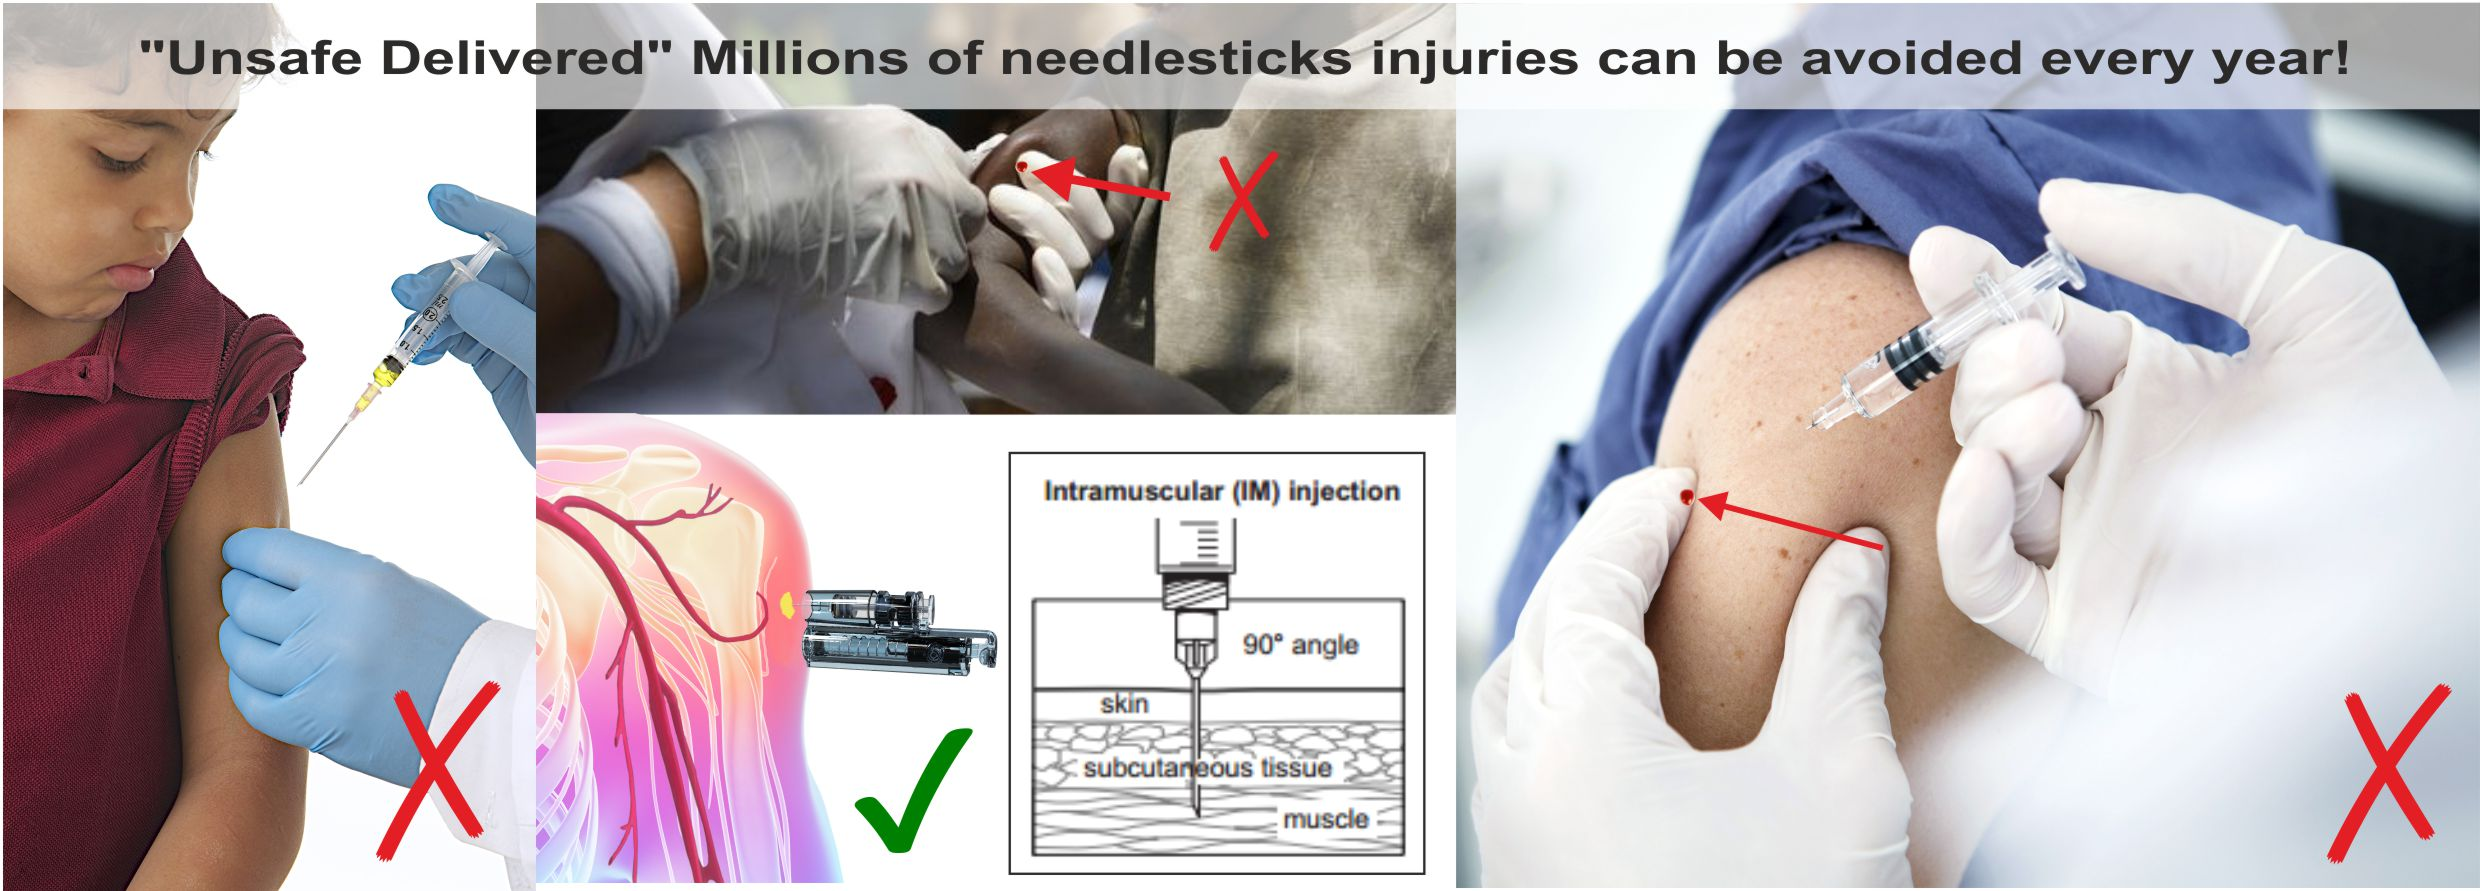 intramusuclar-injection